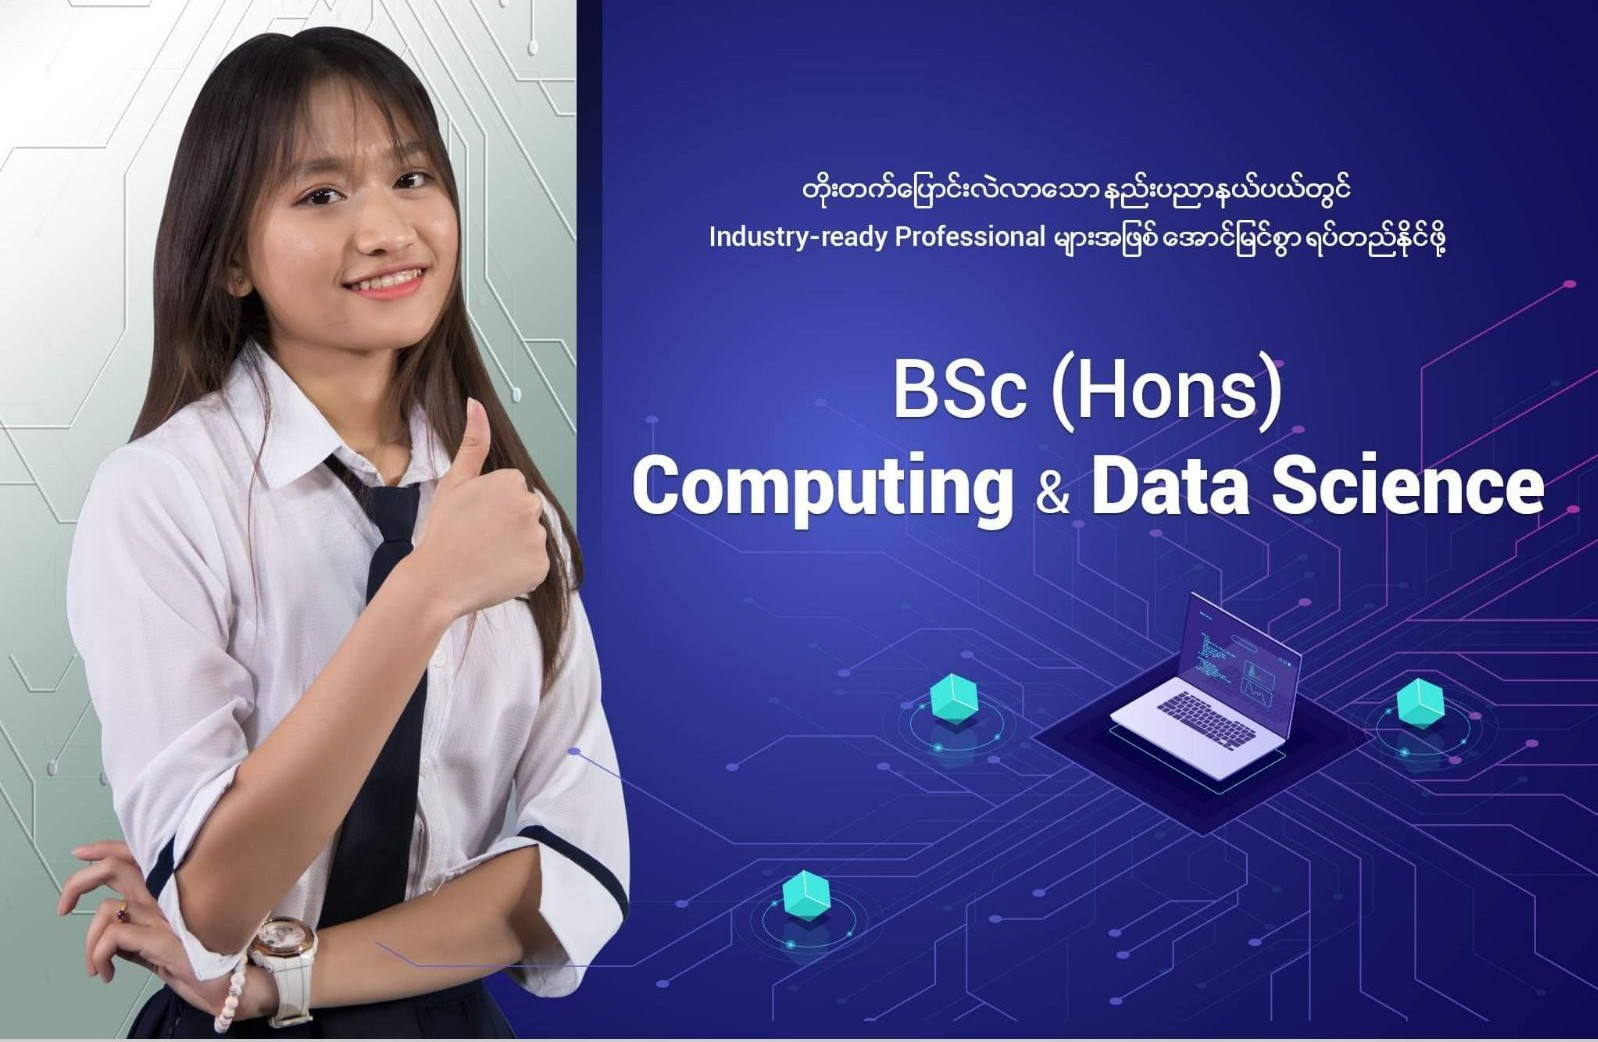 BSc (Hons) Computing and Data Science in Myanmar